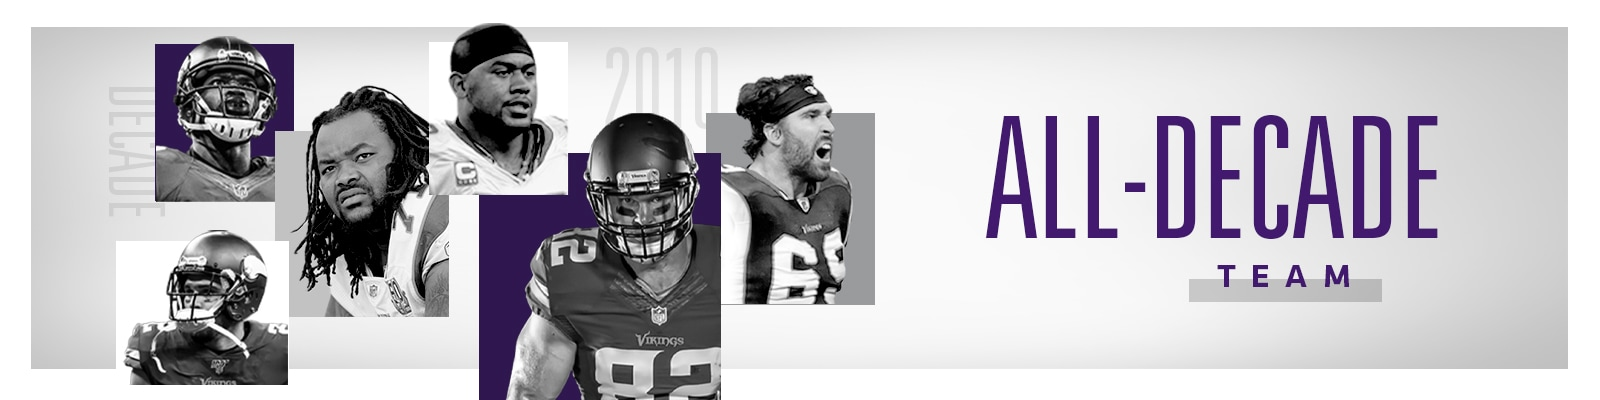 Minnesota Vikings All-Decade Team